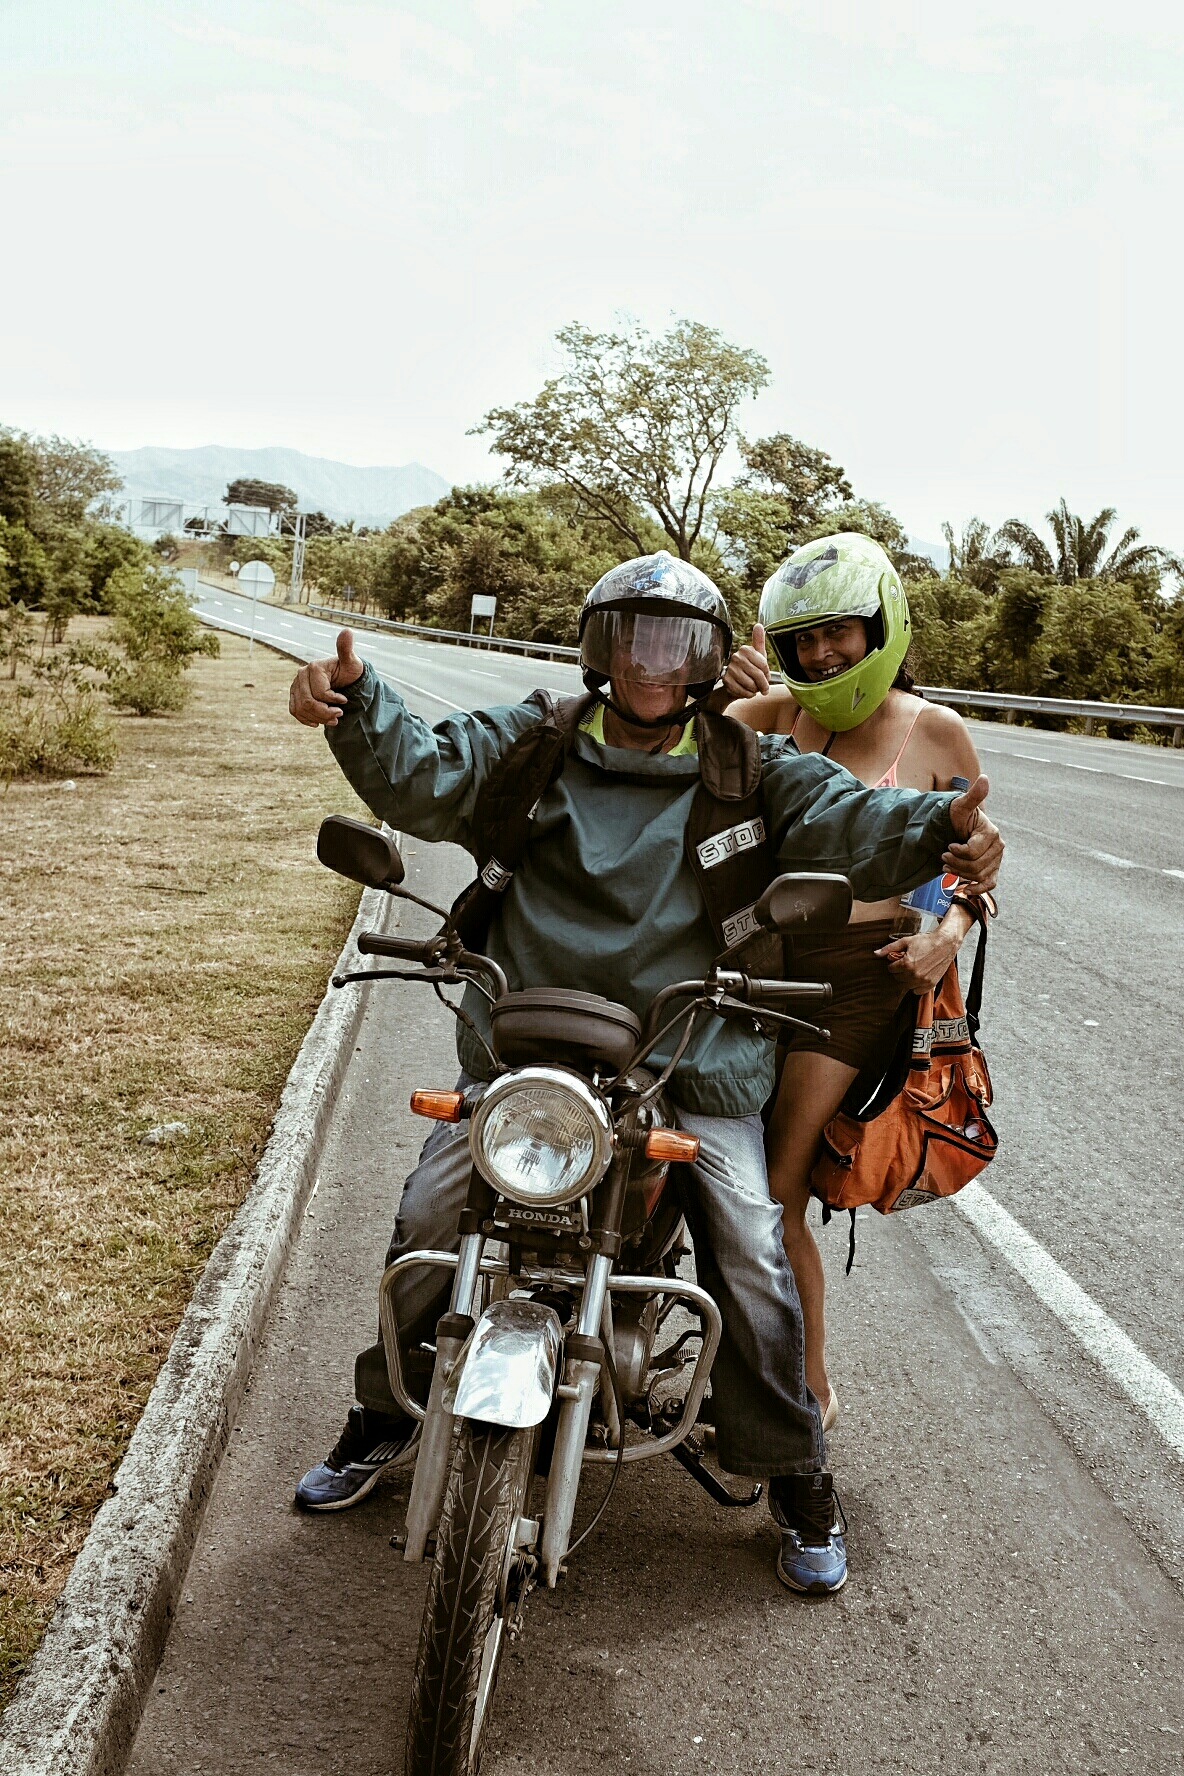 A couple we met on the road. They were doing 450 kilometers on their motorbike on this Sunday.